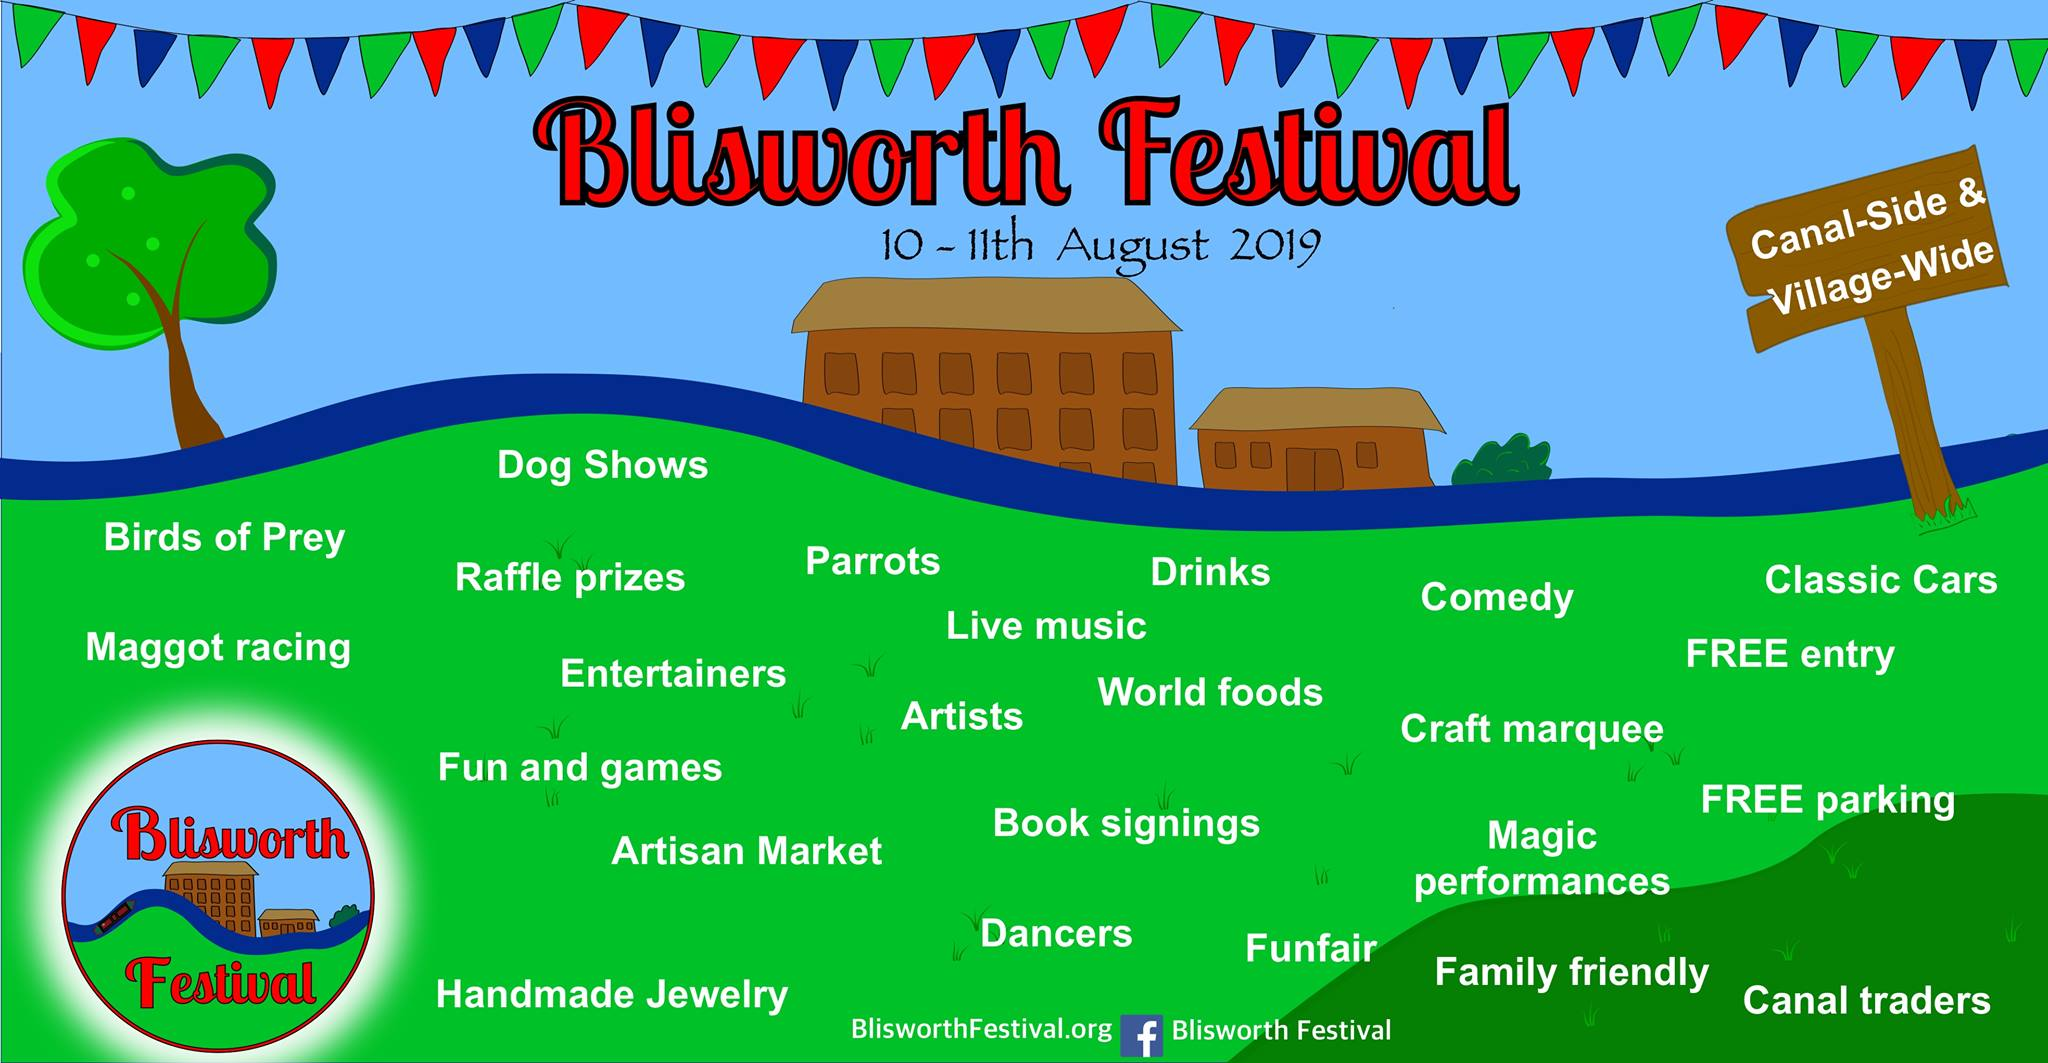 BLISWORTH FESTIVAL 2019 - Saturday & Sunday, 10th and 11th August 2019Time: 11am - 5pmVenue: Blisworth, Northamptonshire